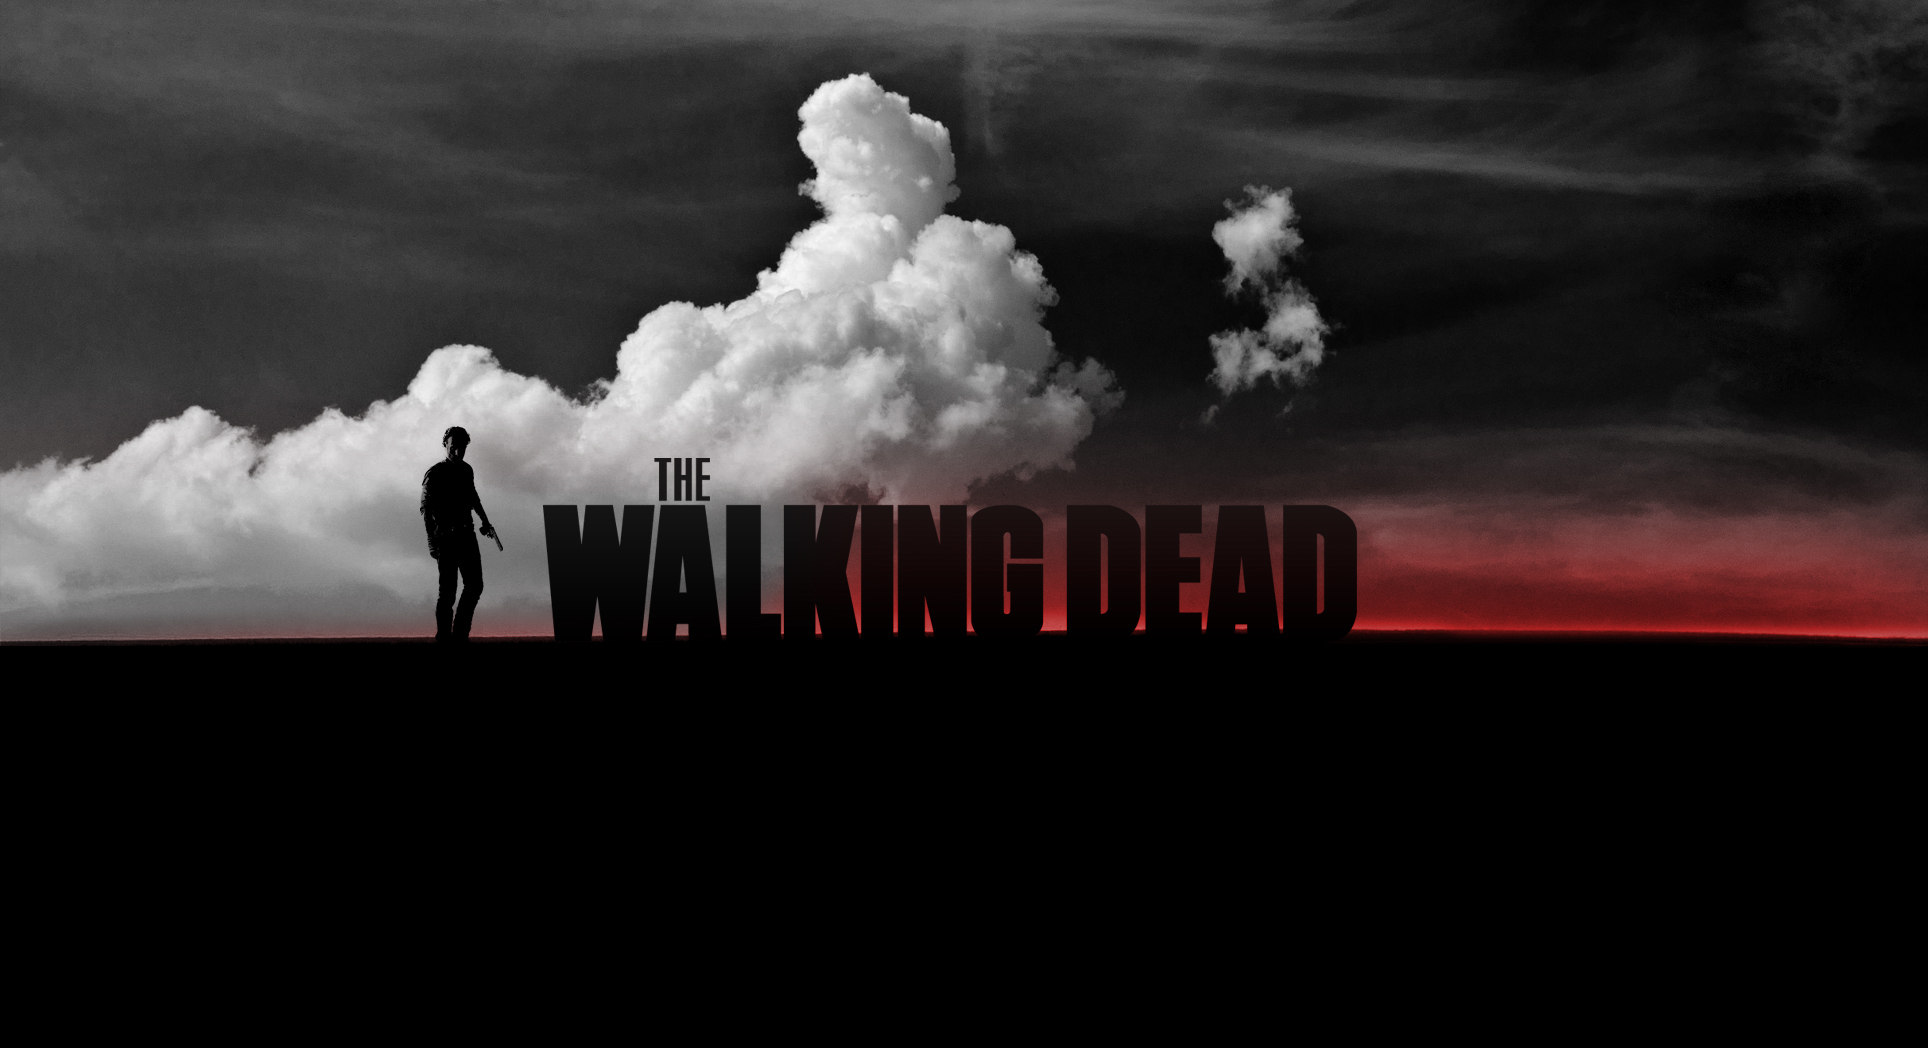 the walking dead wallpapers 1080p